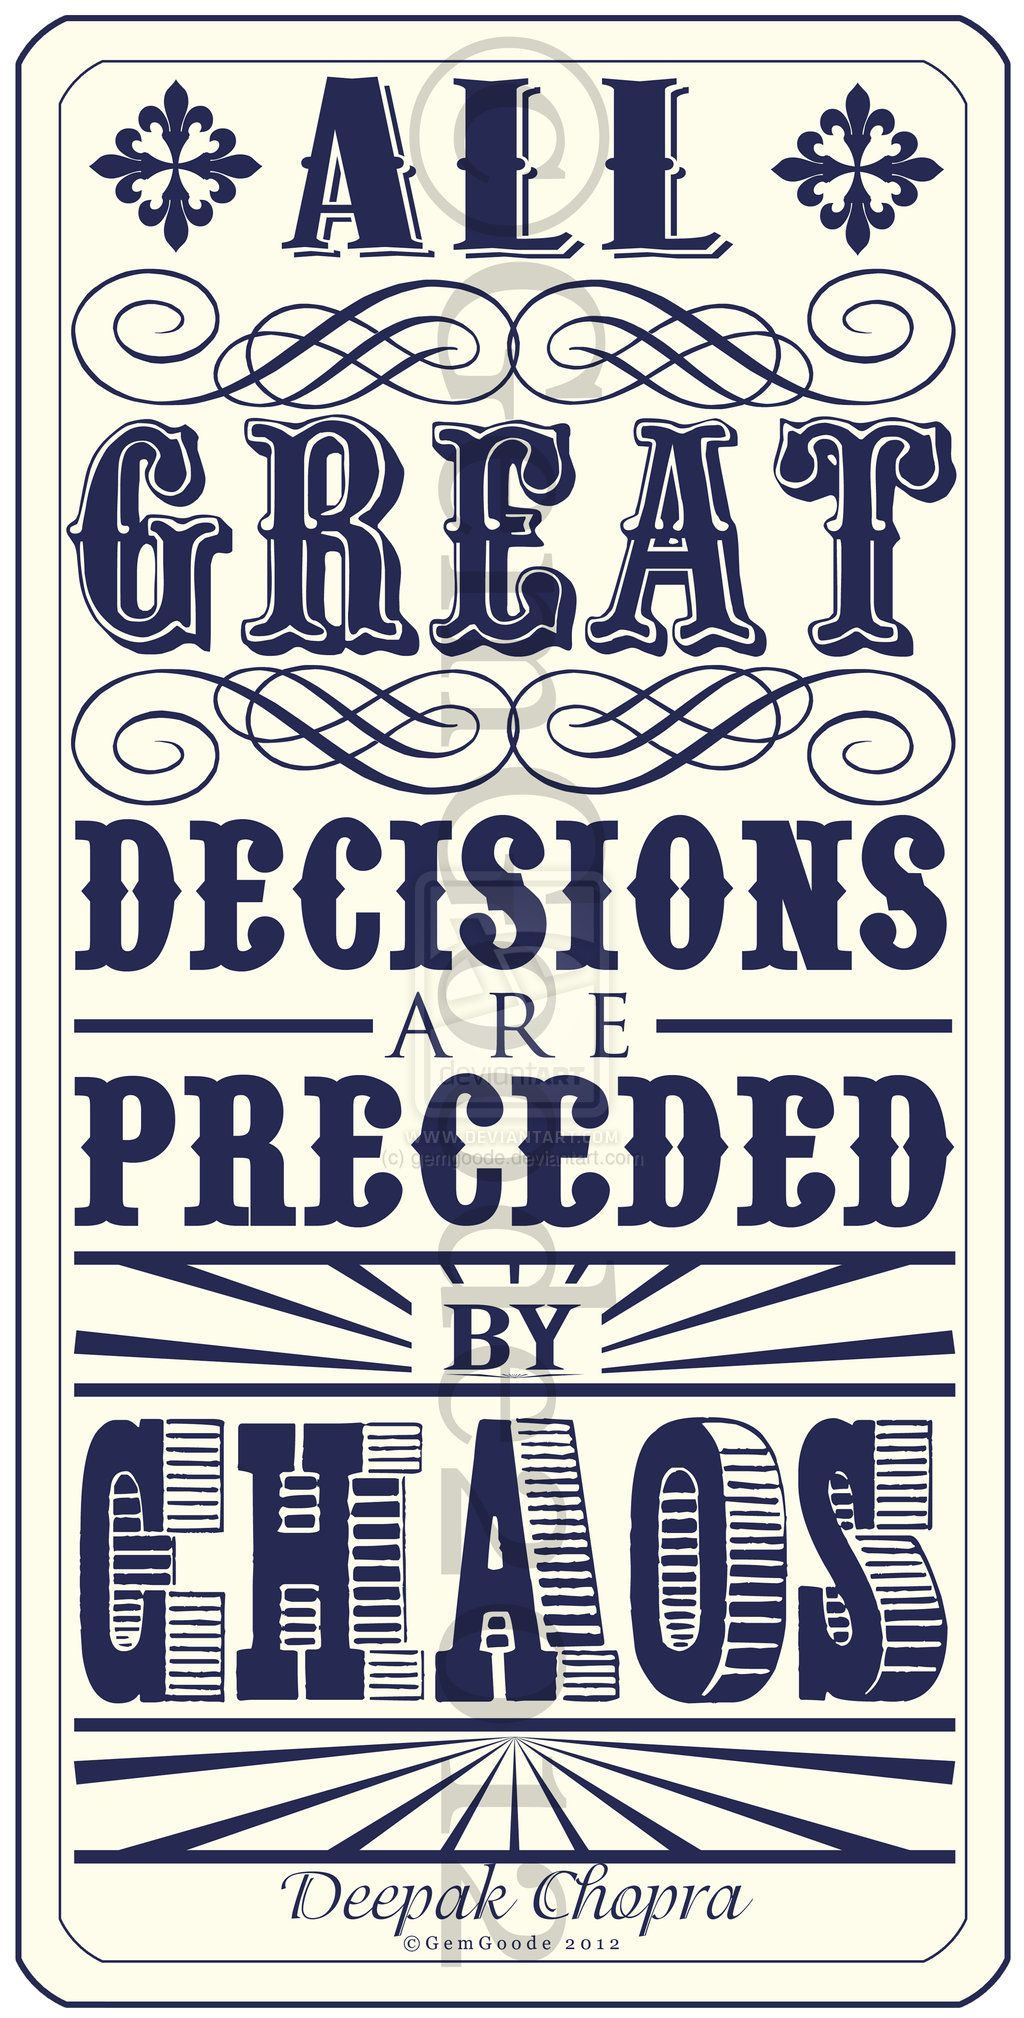 All Great Decisions Are Preceded By Chaos.